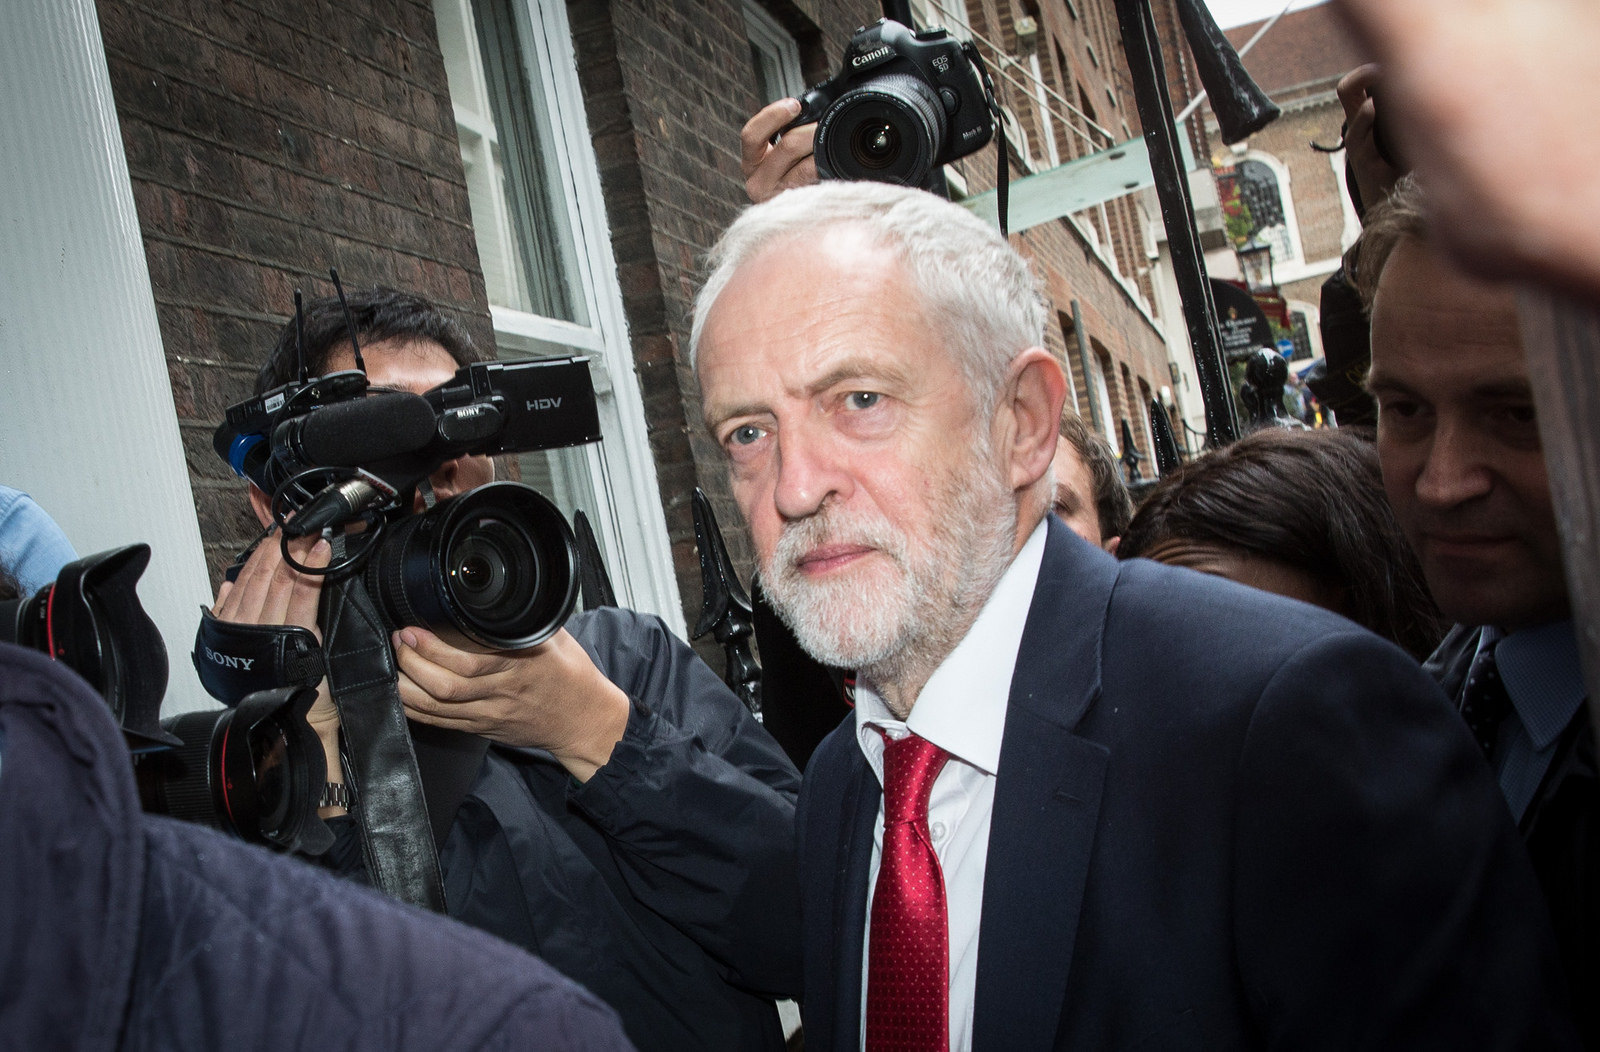 Jeremy Corbyn: 12 May 2017 Pic: Chatham House (Flickr, Creative Comms)